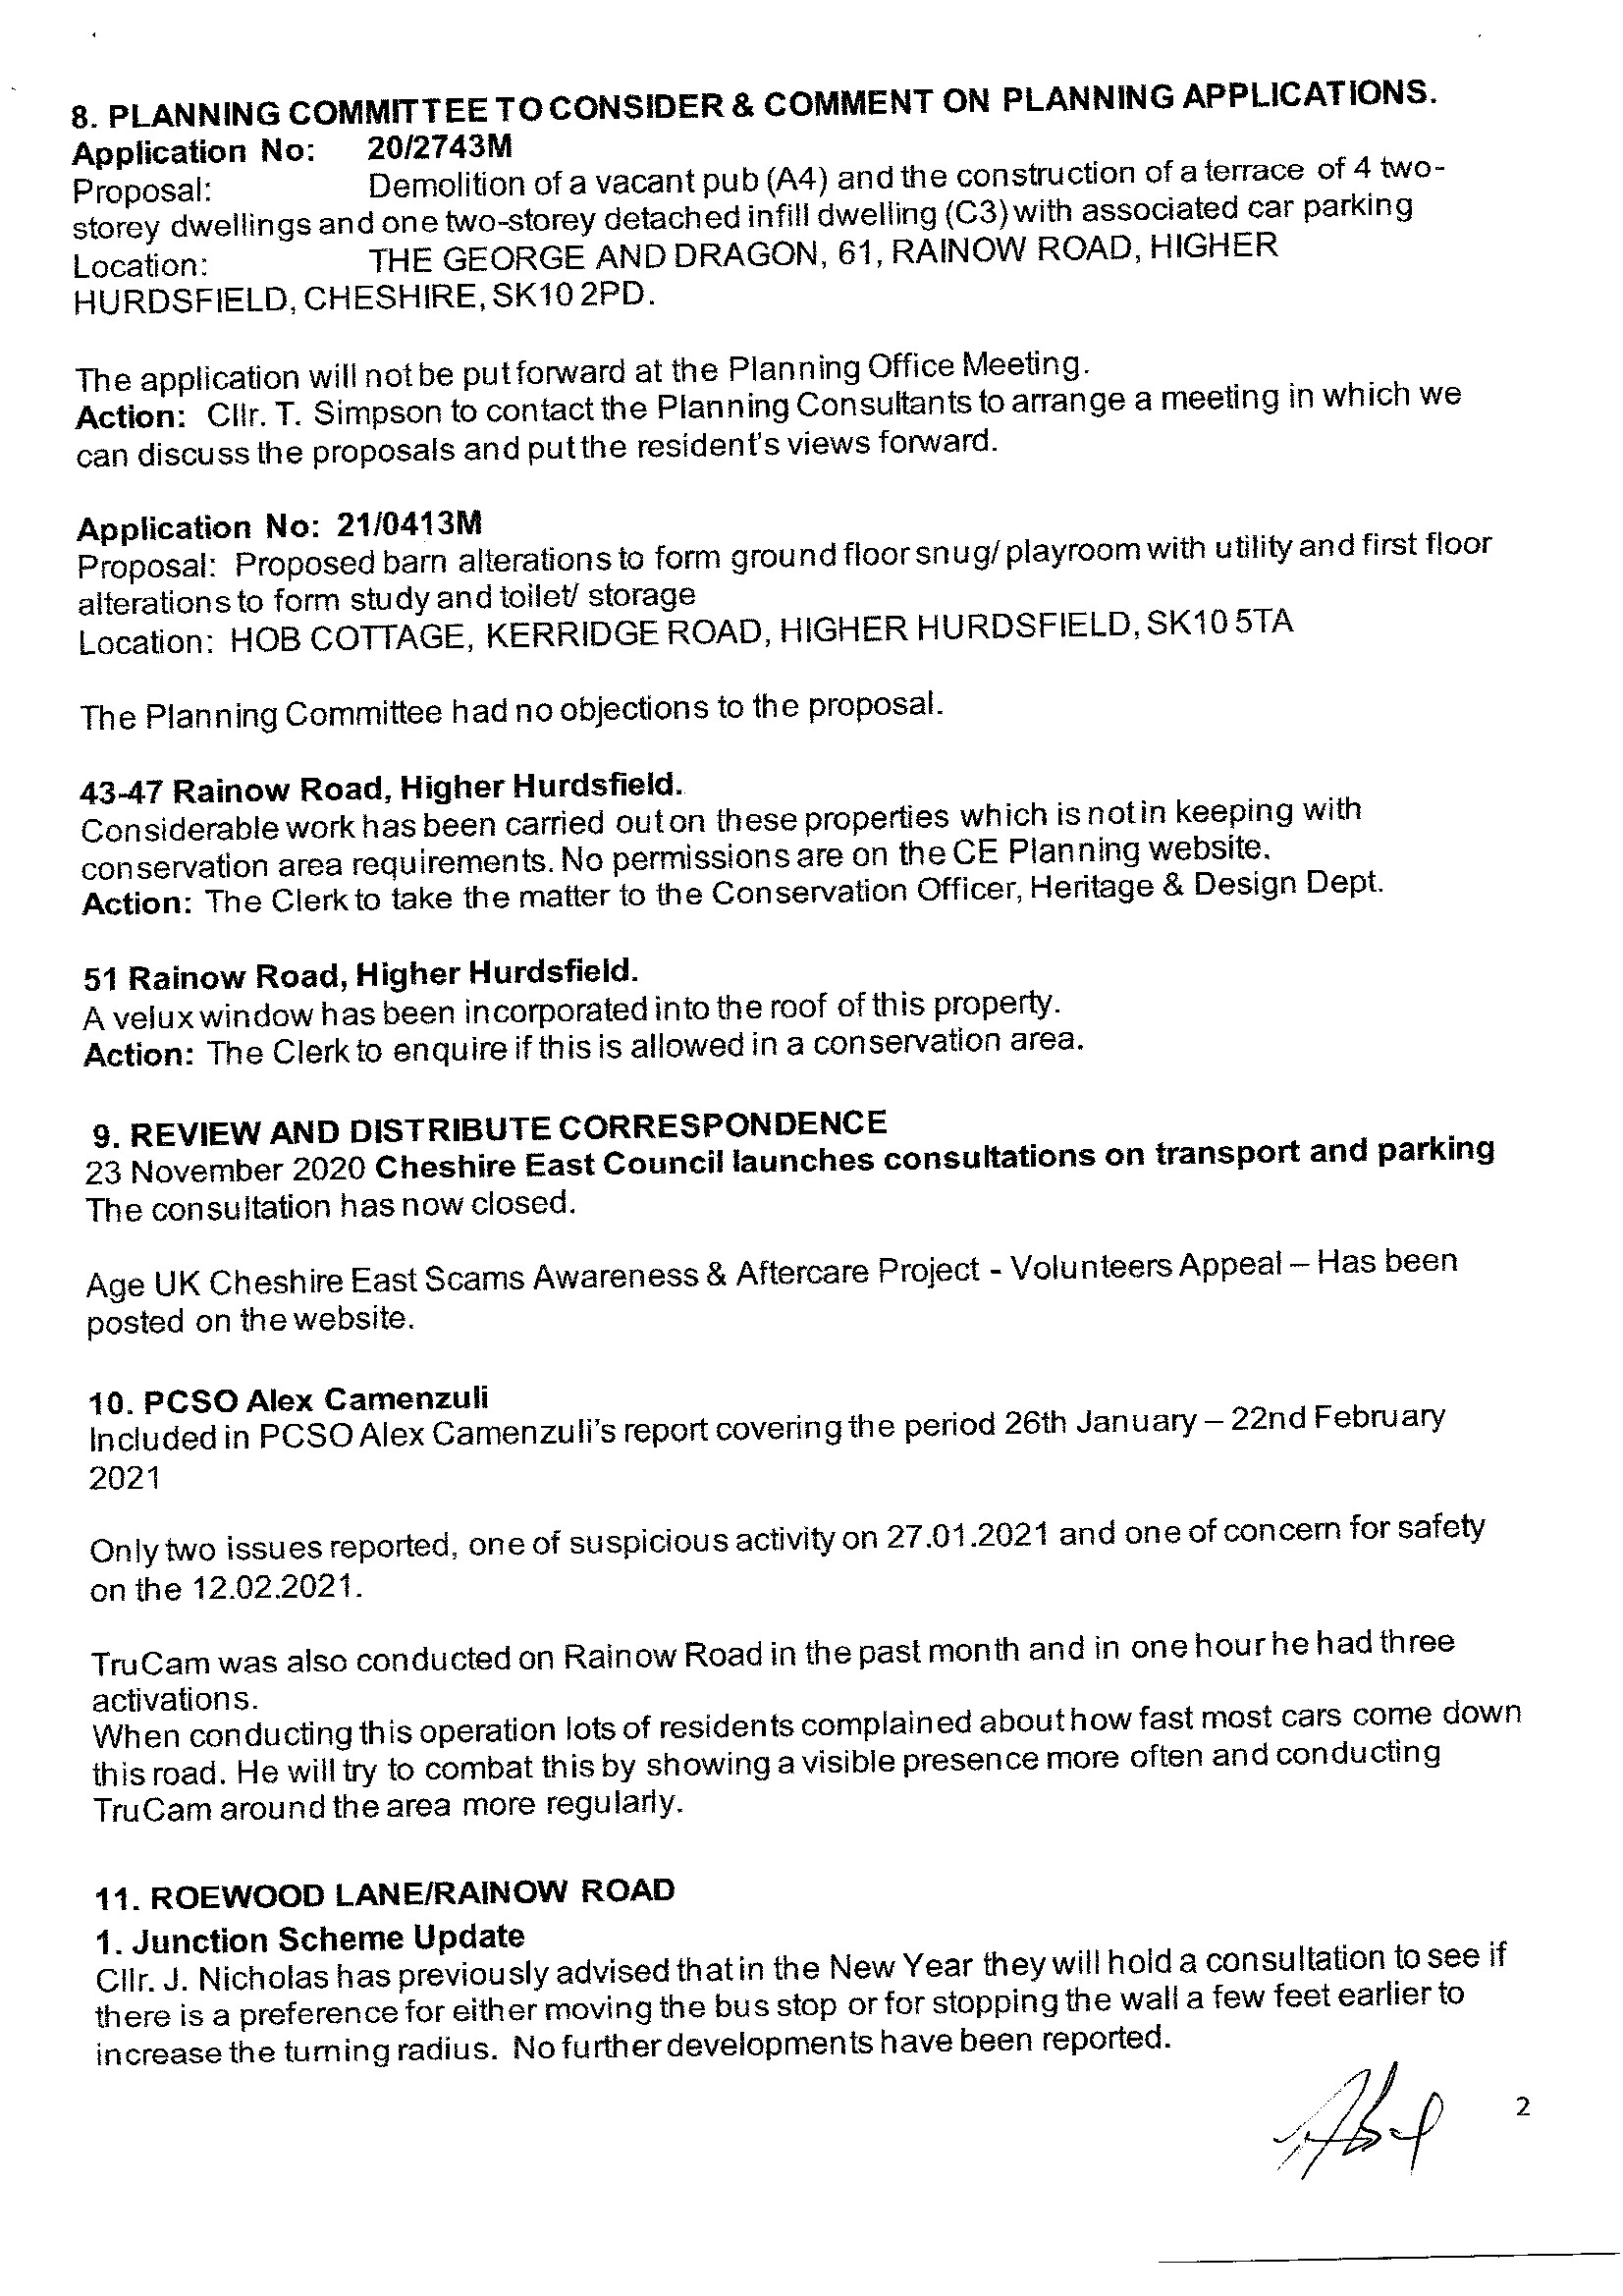 Signed Meeting Minutes 2 of 4